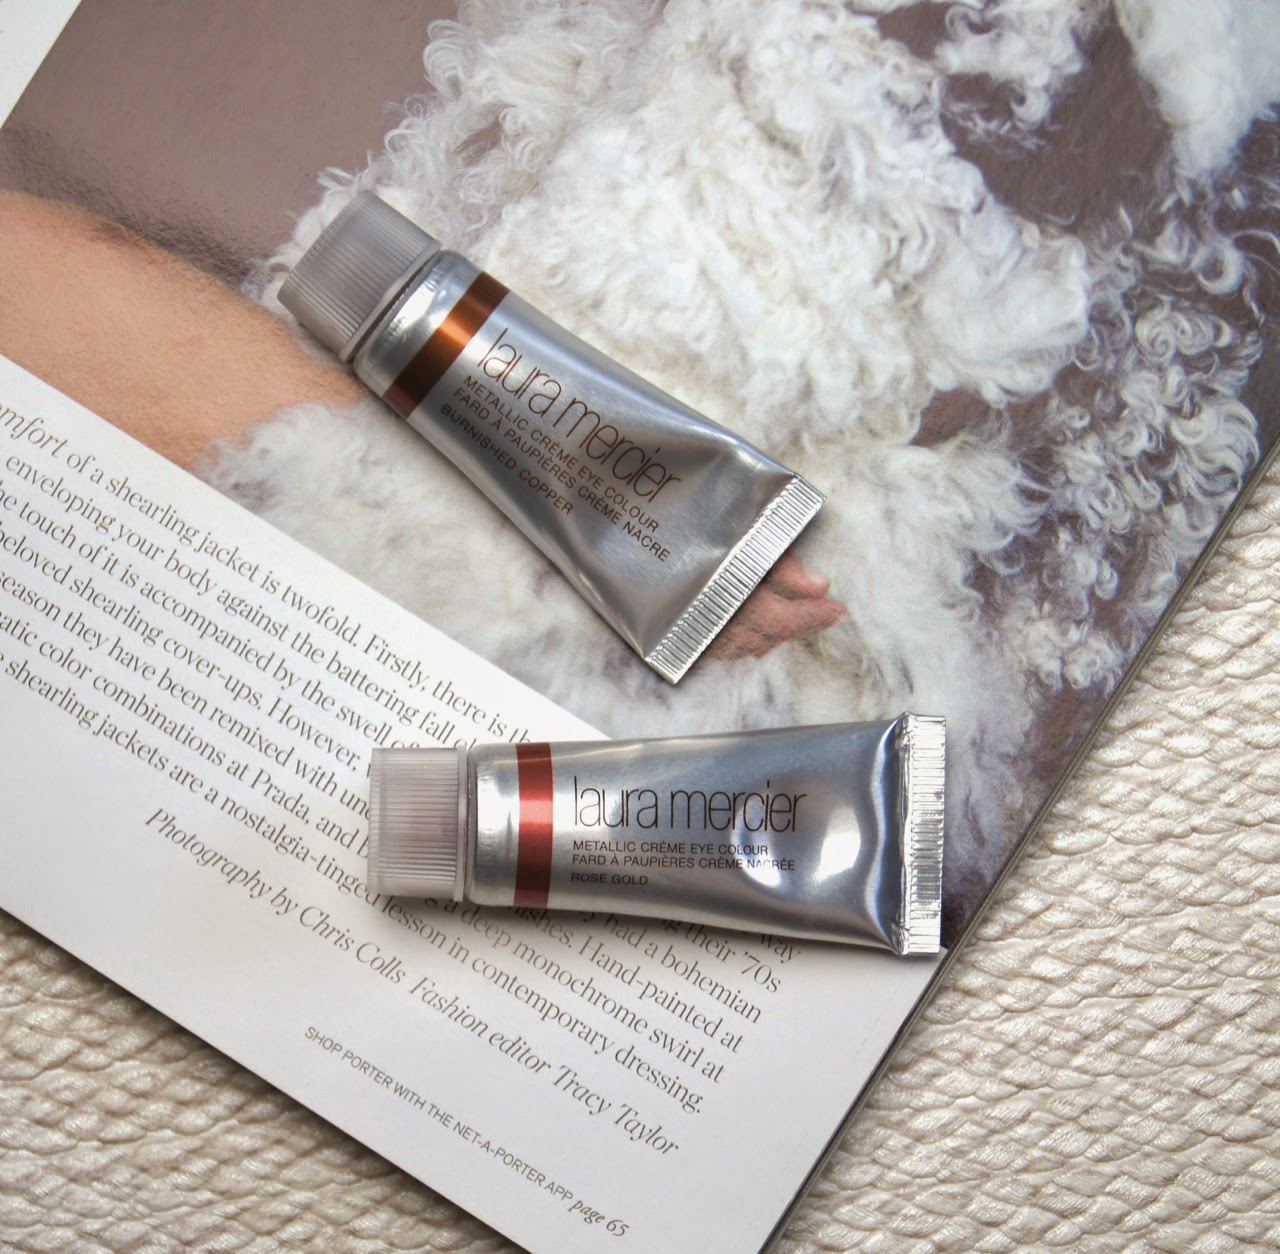 laura mercier metallic creme eye colour review swatches